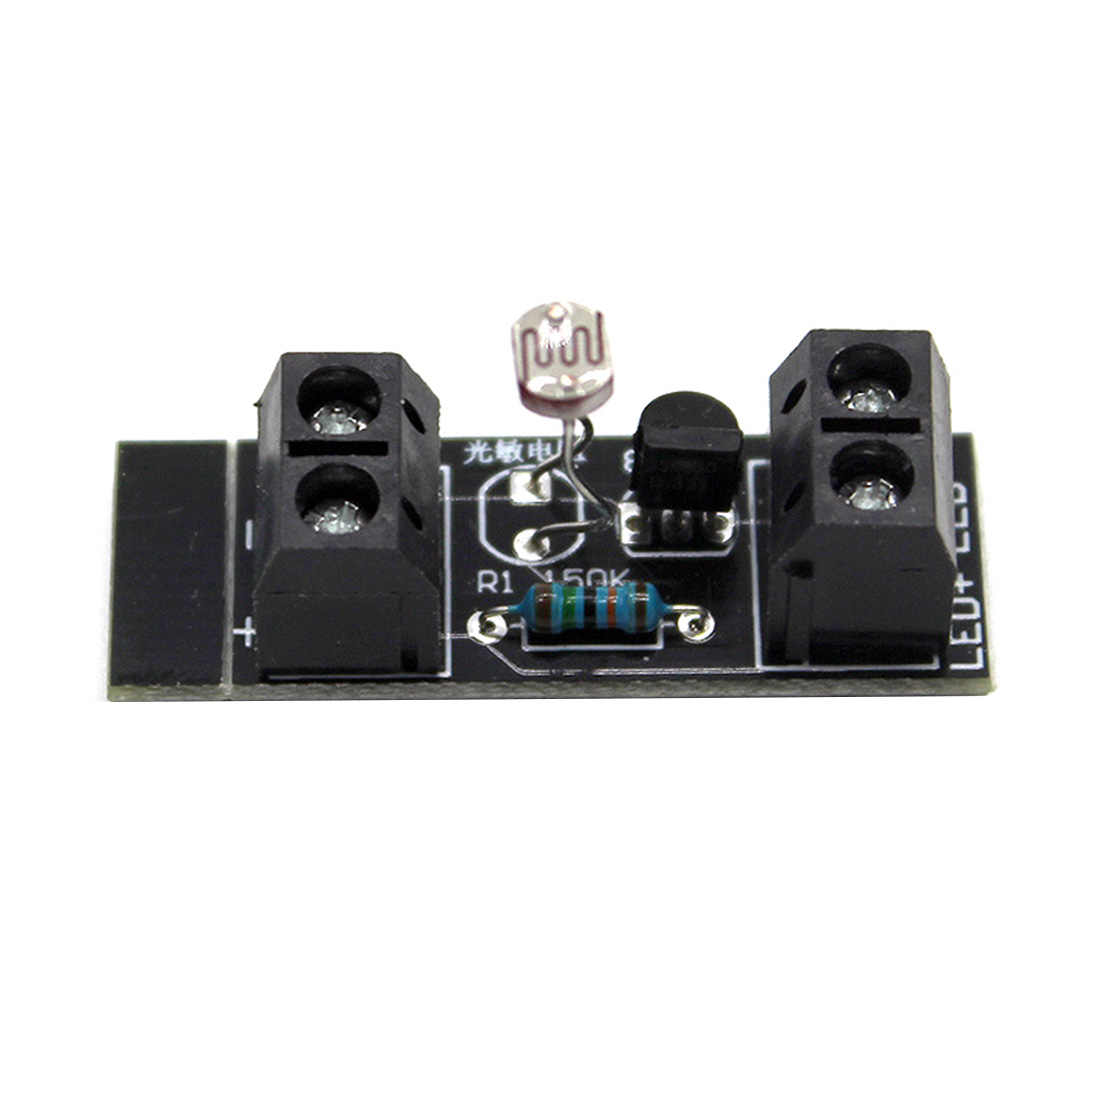 Intelligent Light Control Sensor Switch Module Light Sensor Board for DIY RC Robot Car DIY Smart Circuit Accessories